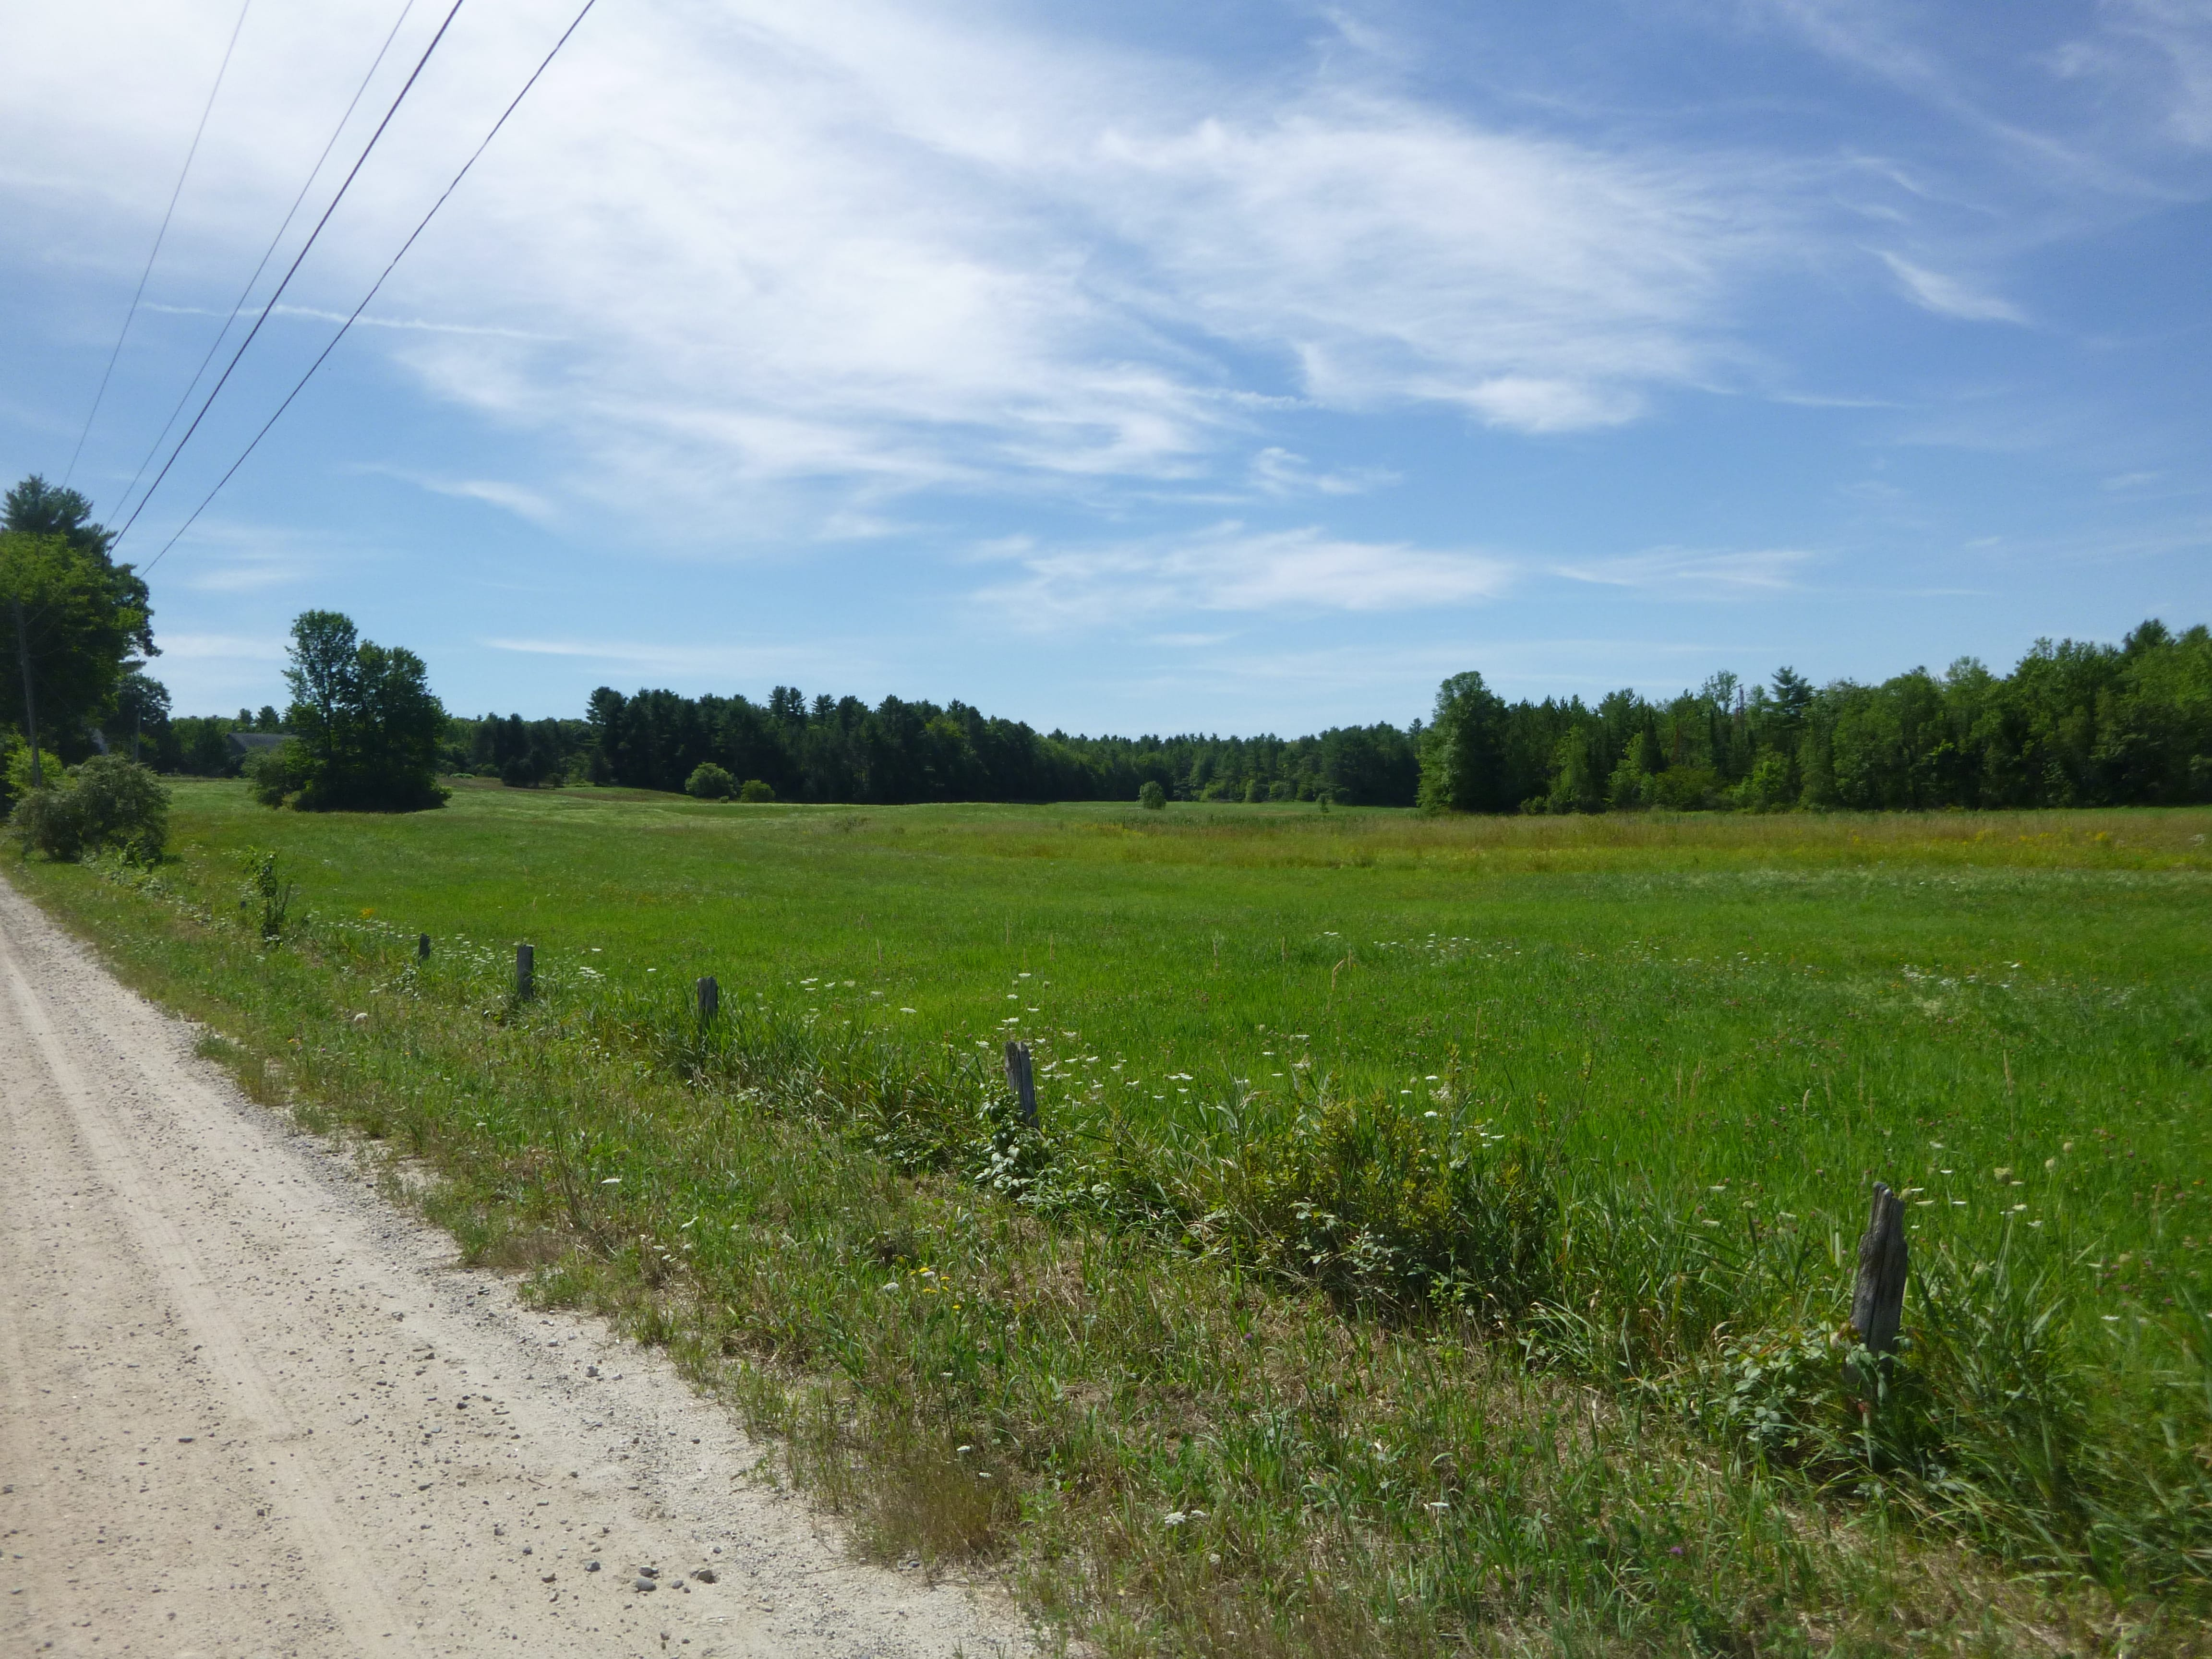 Maine Farmland Trust Will Soon Be Looking For A Farmer To Purchase 143 Acres Of Land In Windham.